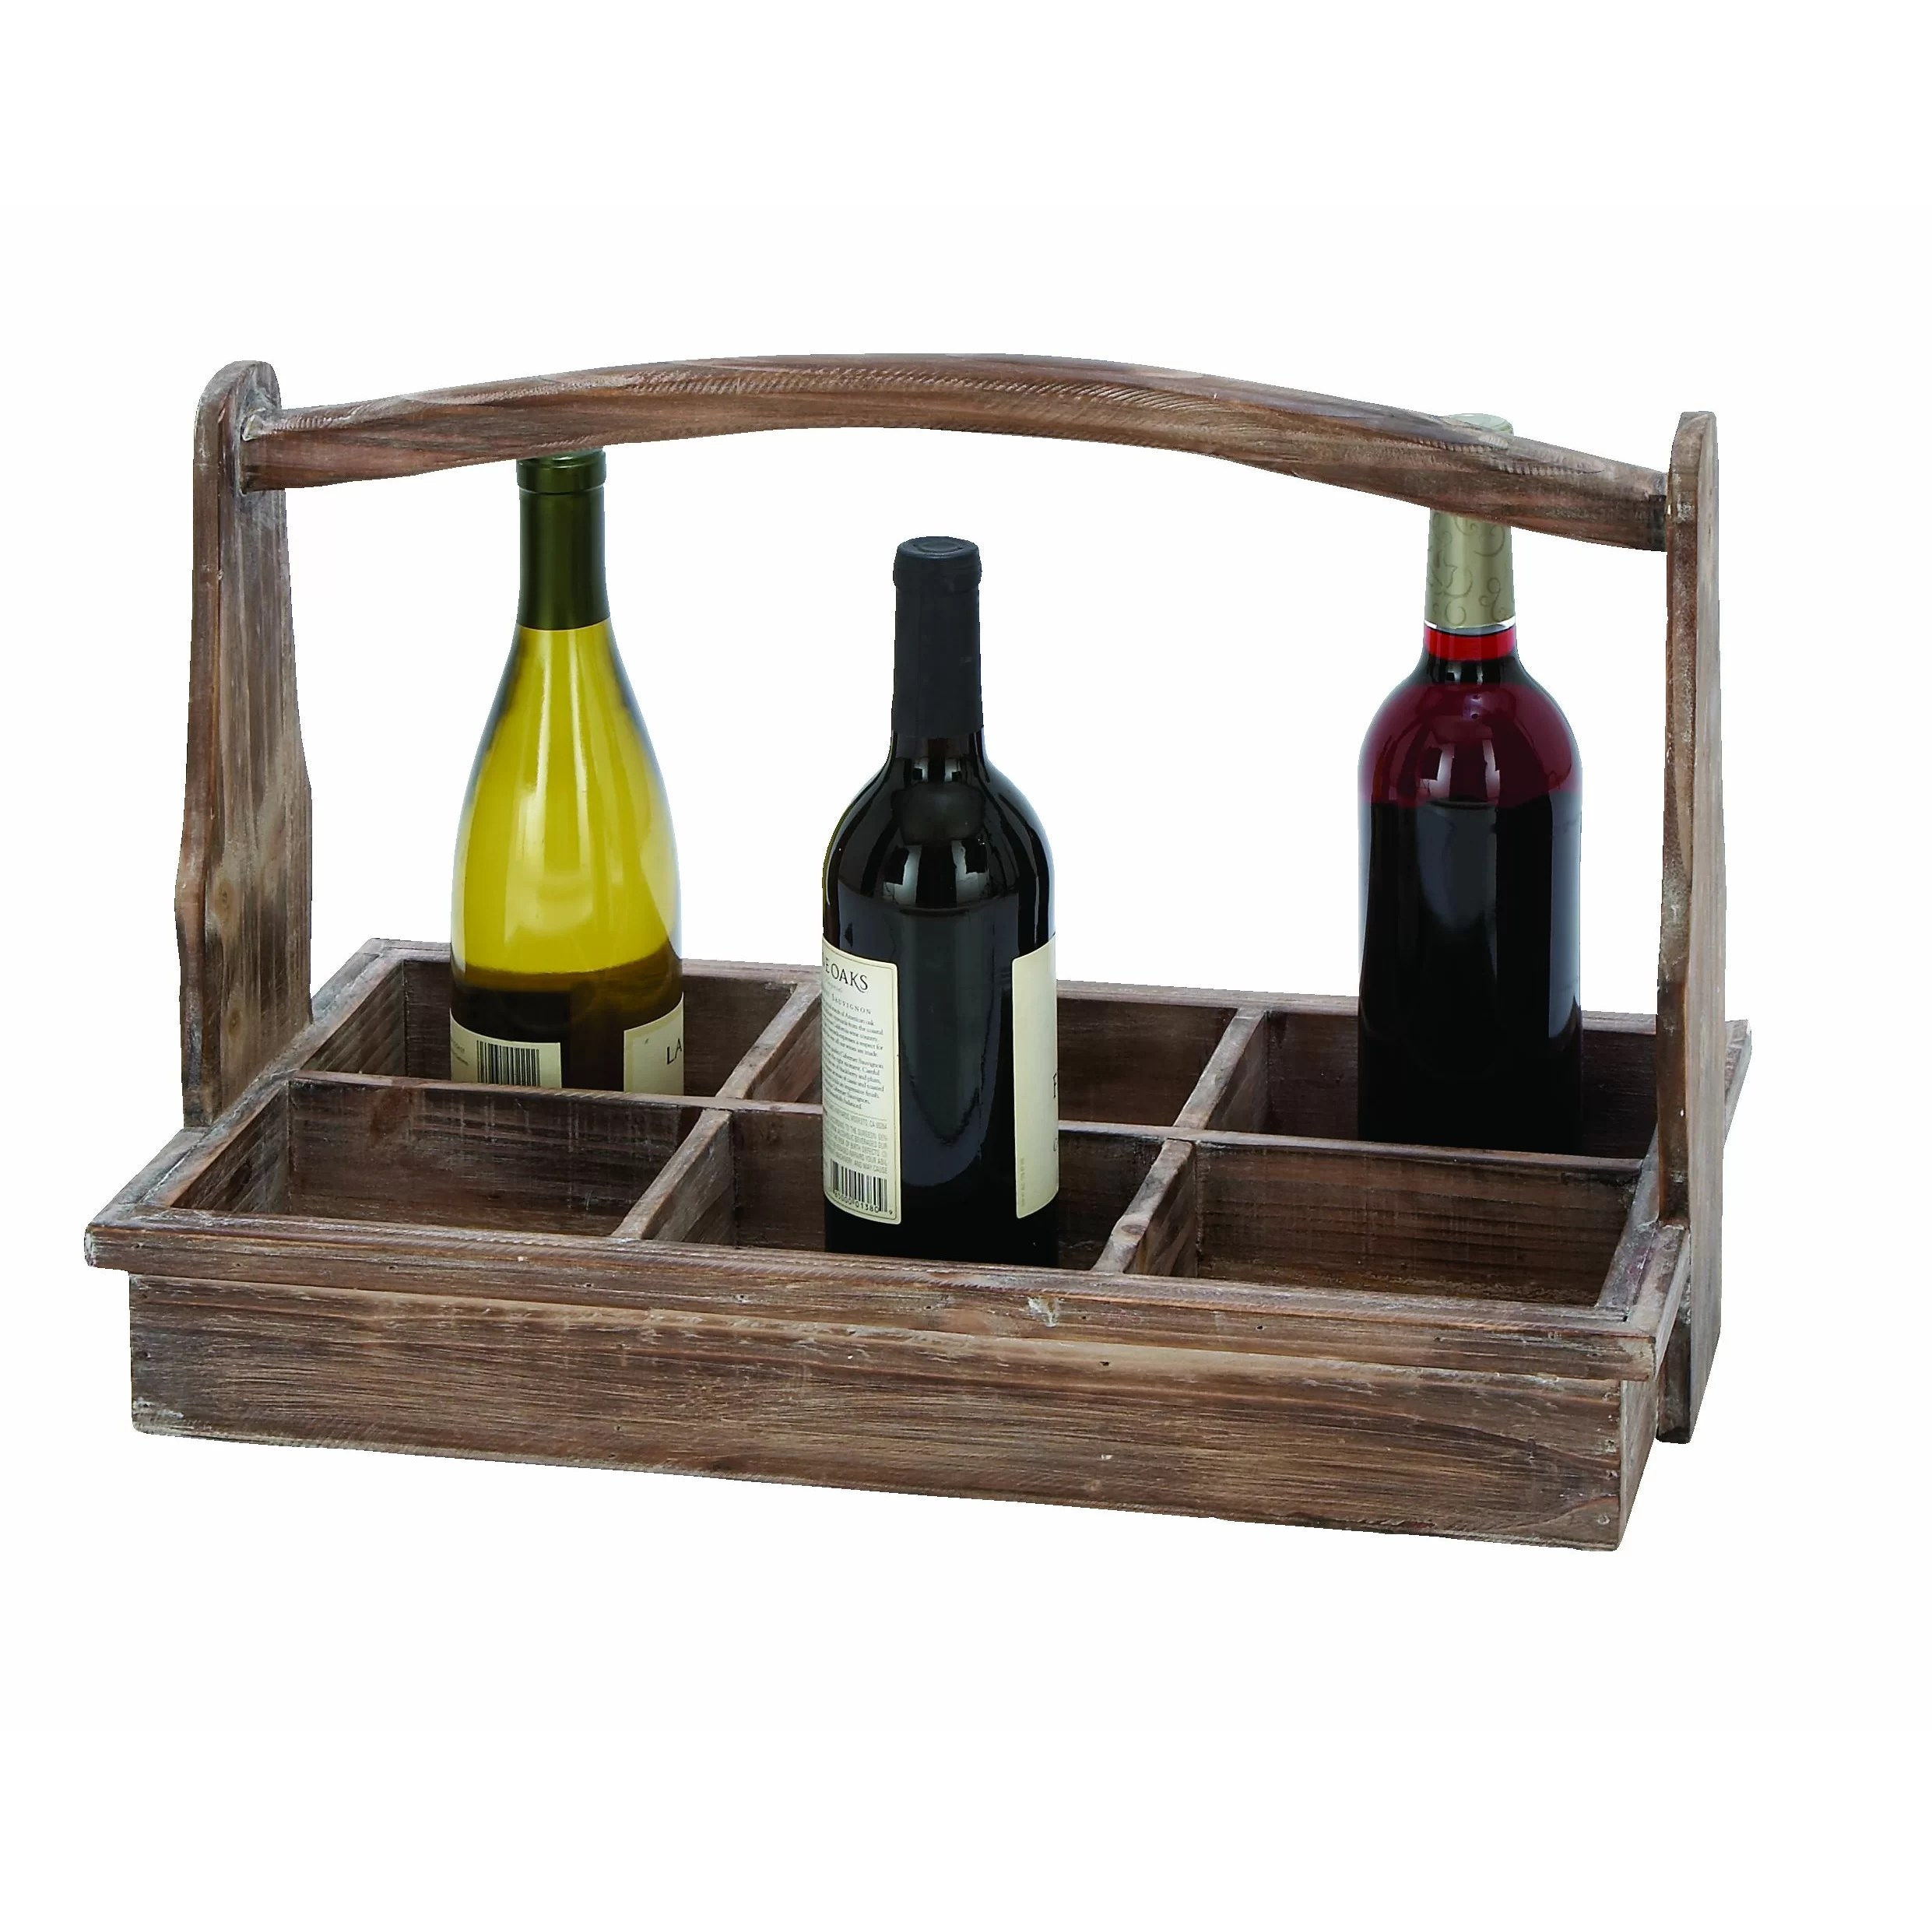 6 Bottle Wooden Wine Rack Woodland Imports 6 Bottle Tabletop Wine Rack & Reviews